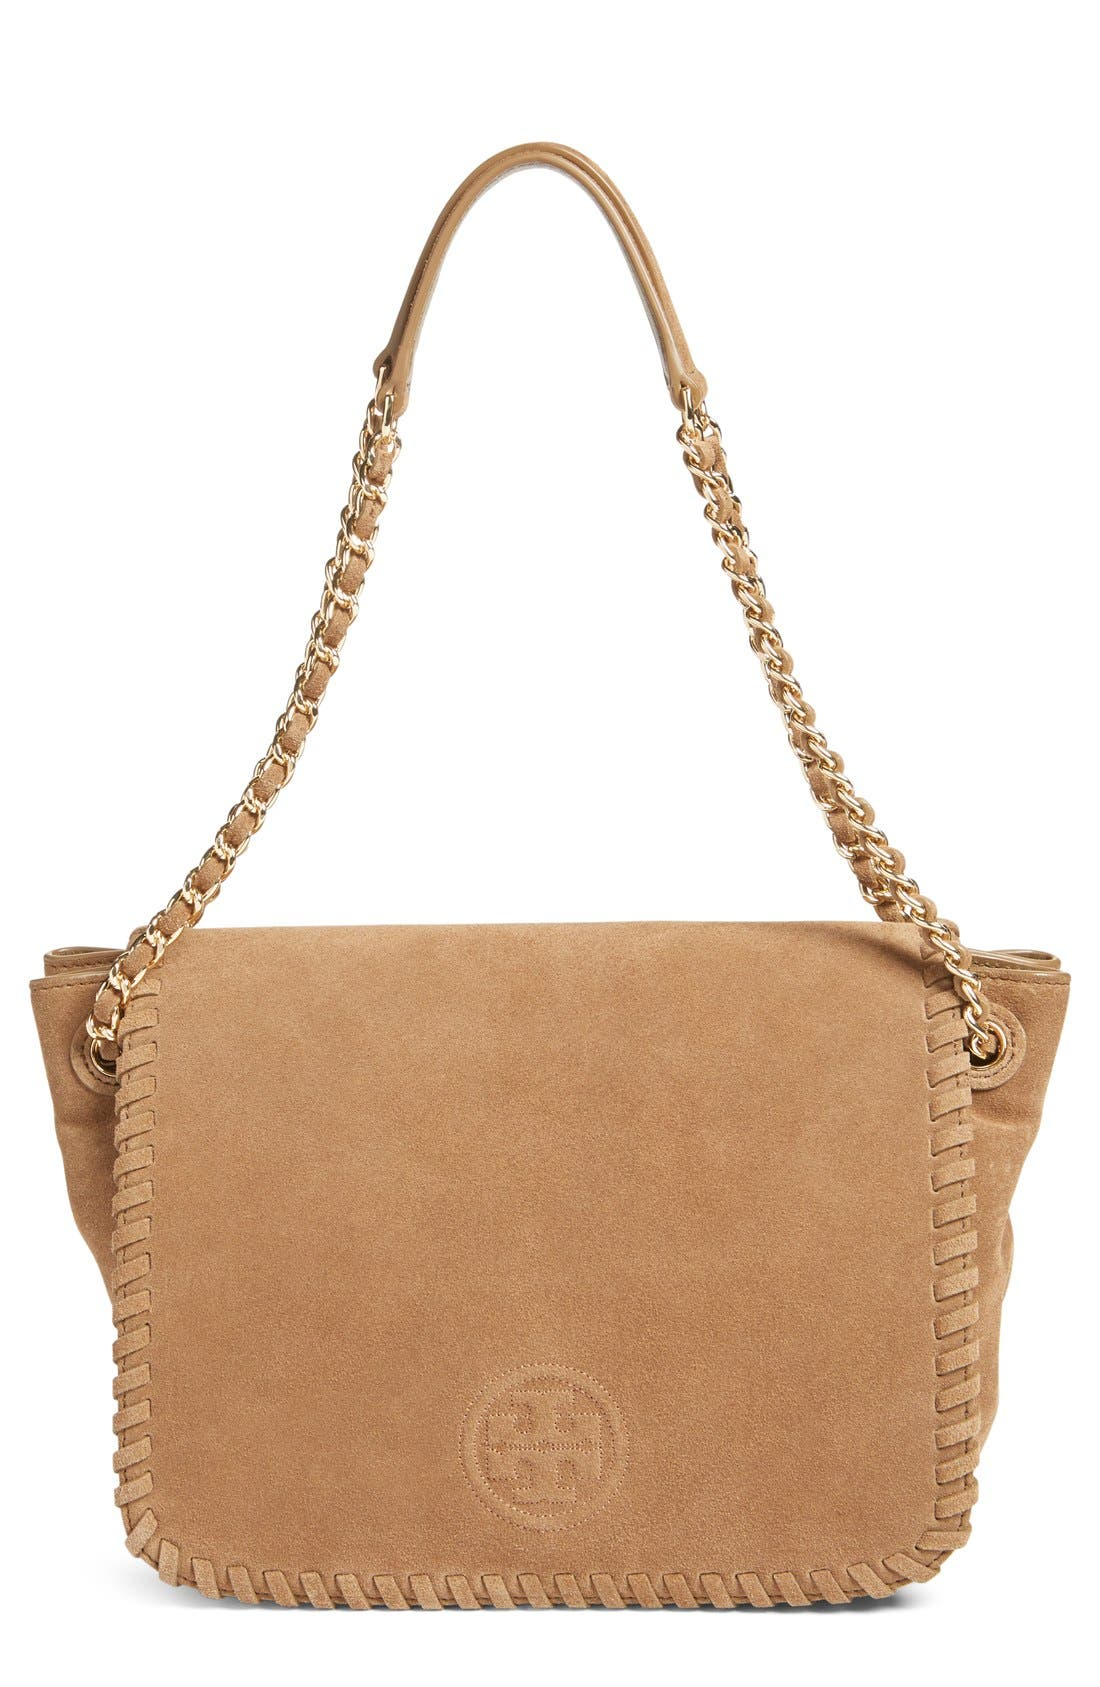 Main Image - Tory Burch 'Small Marion' Suede Shoulder Bag